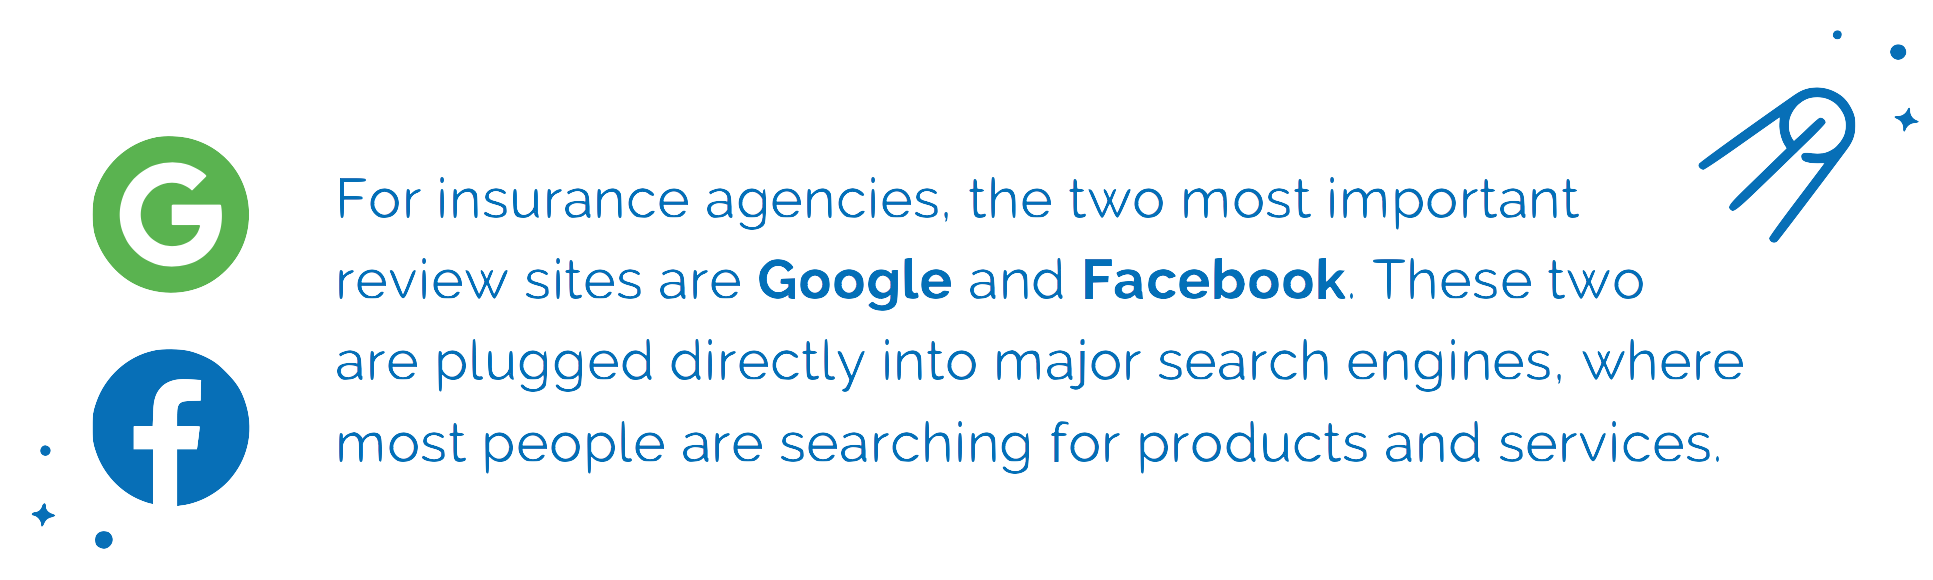 The two most important review sites for insurance agents are Google and Facebook